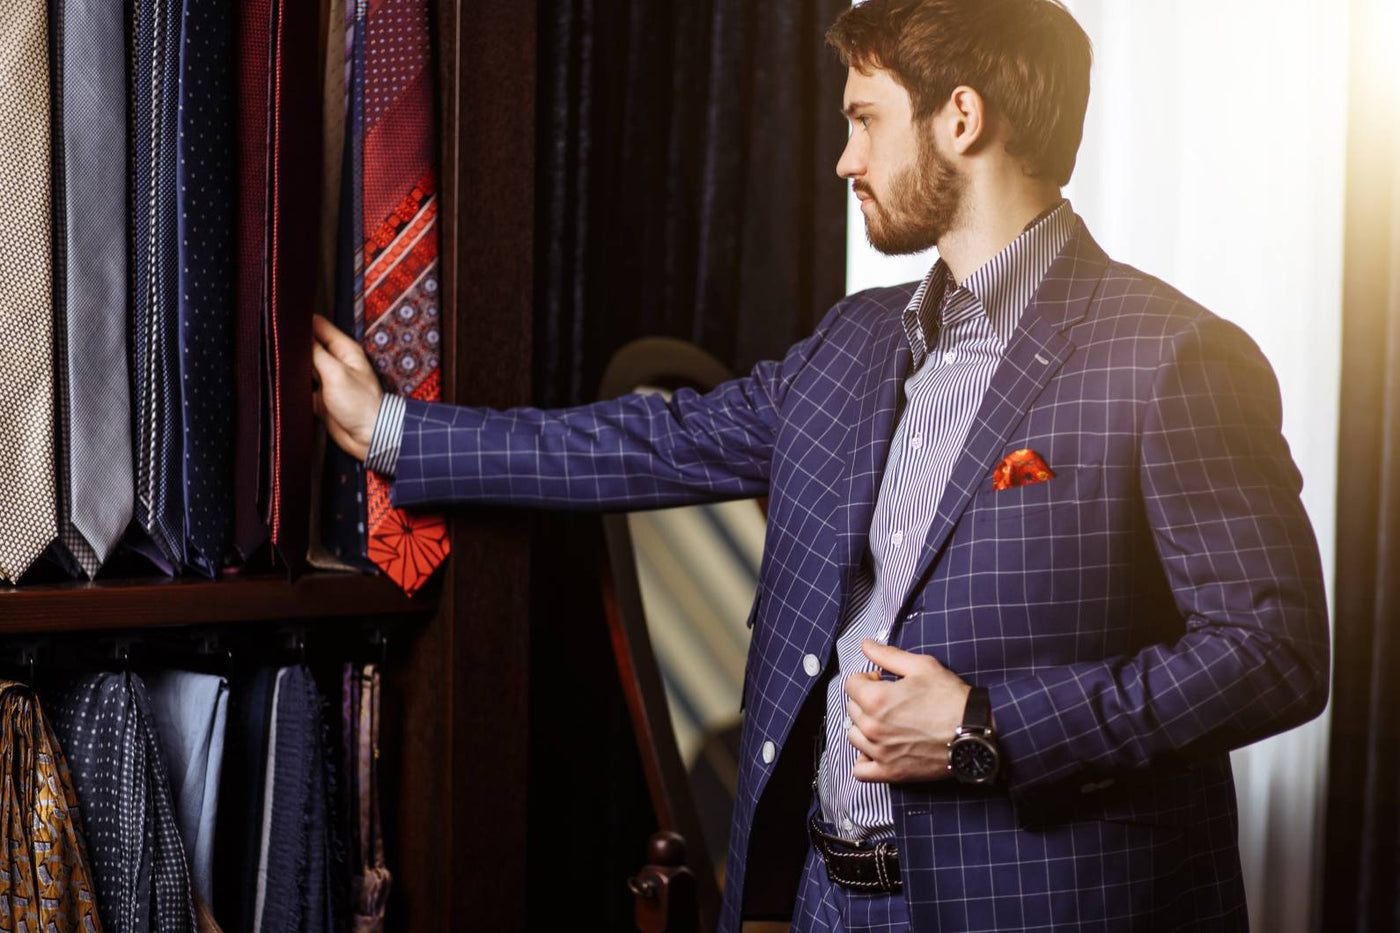 A Guide on Choosing the Right Tie